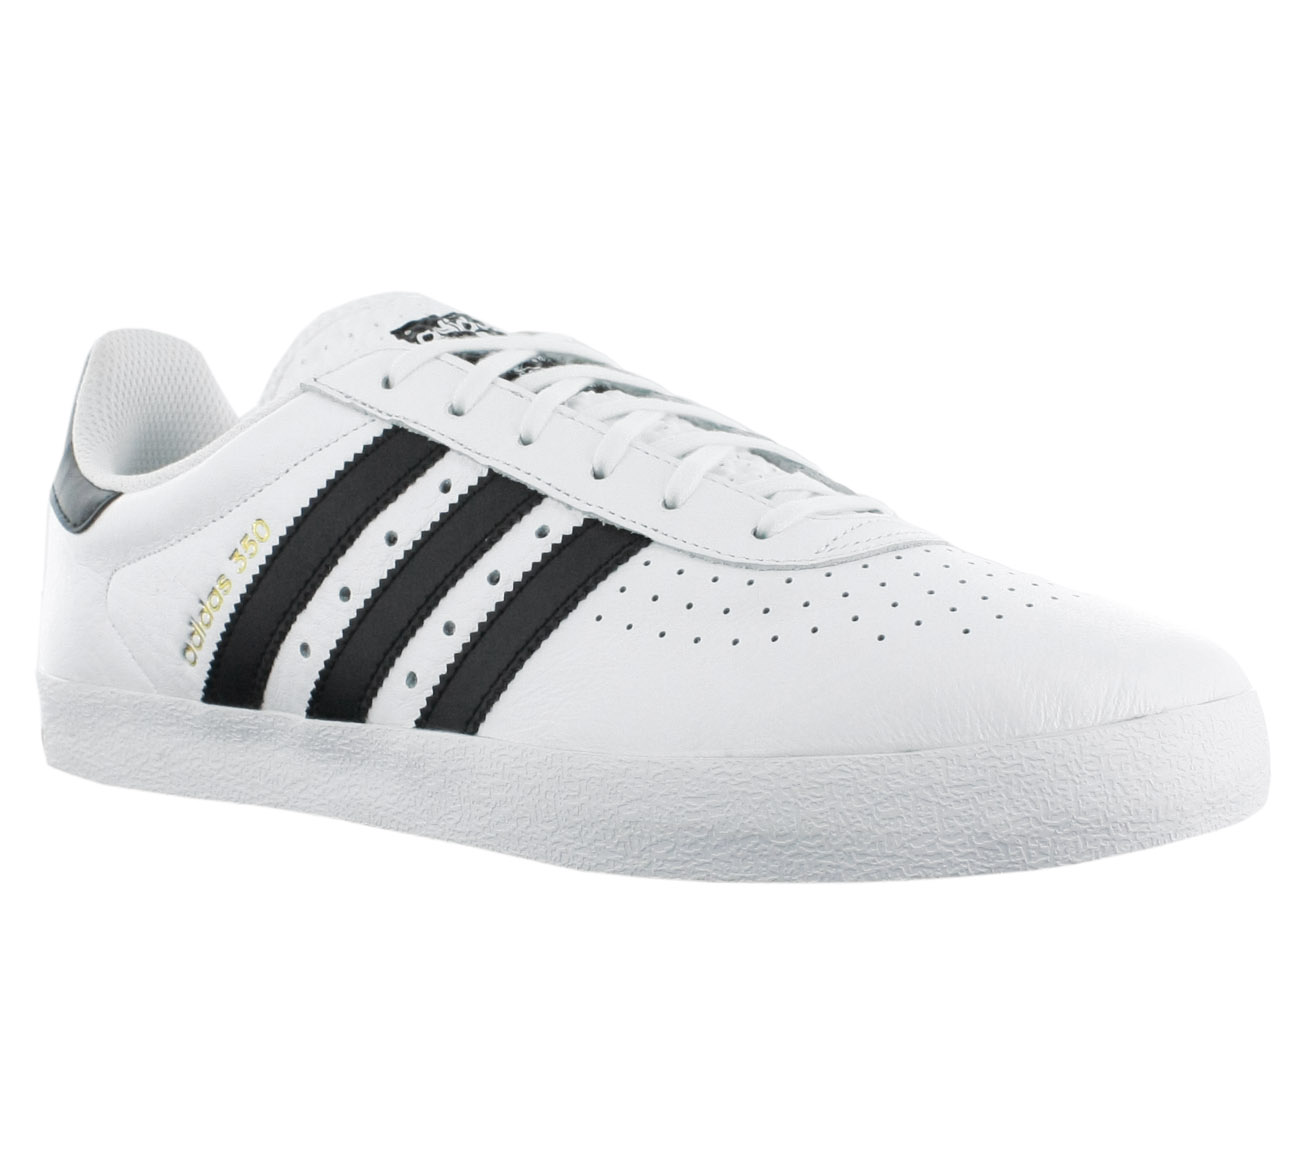 NEW adidas 350 BY9762 Mens Shoes Trainers Sneakers SALE